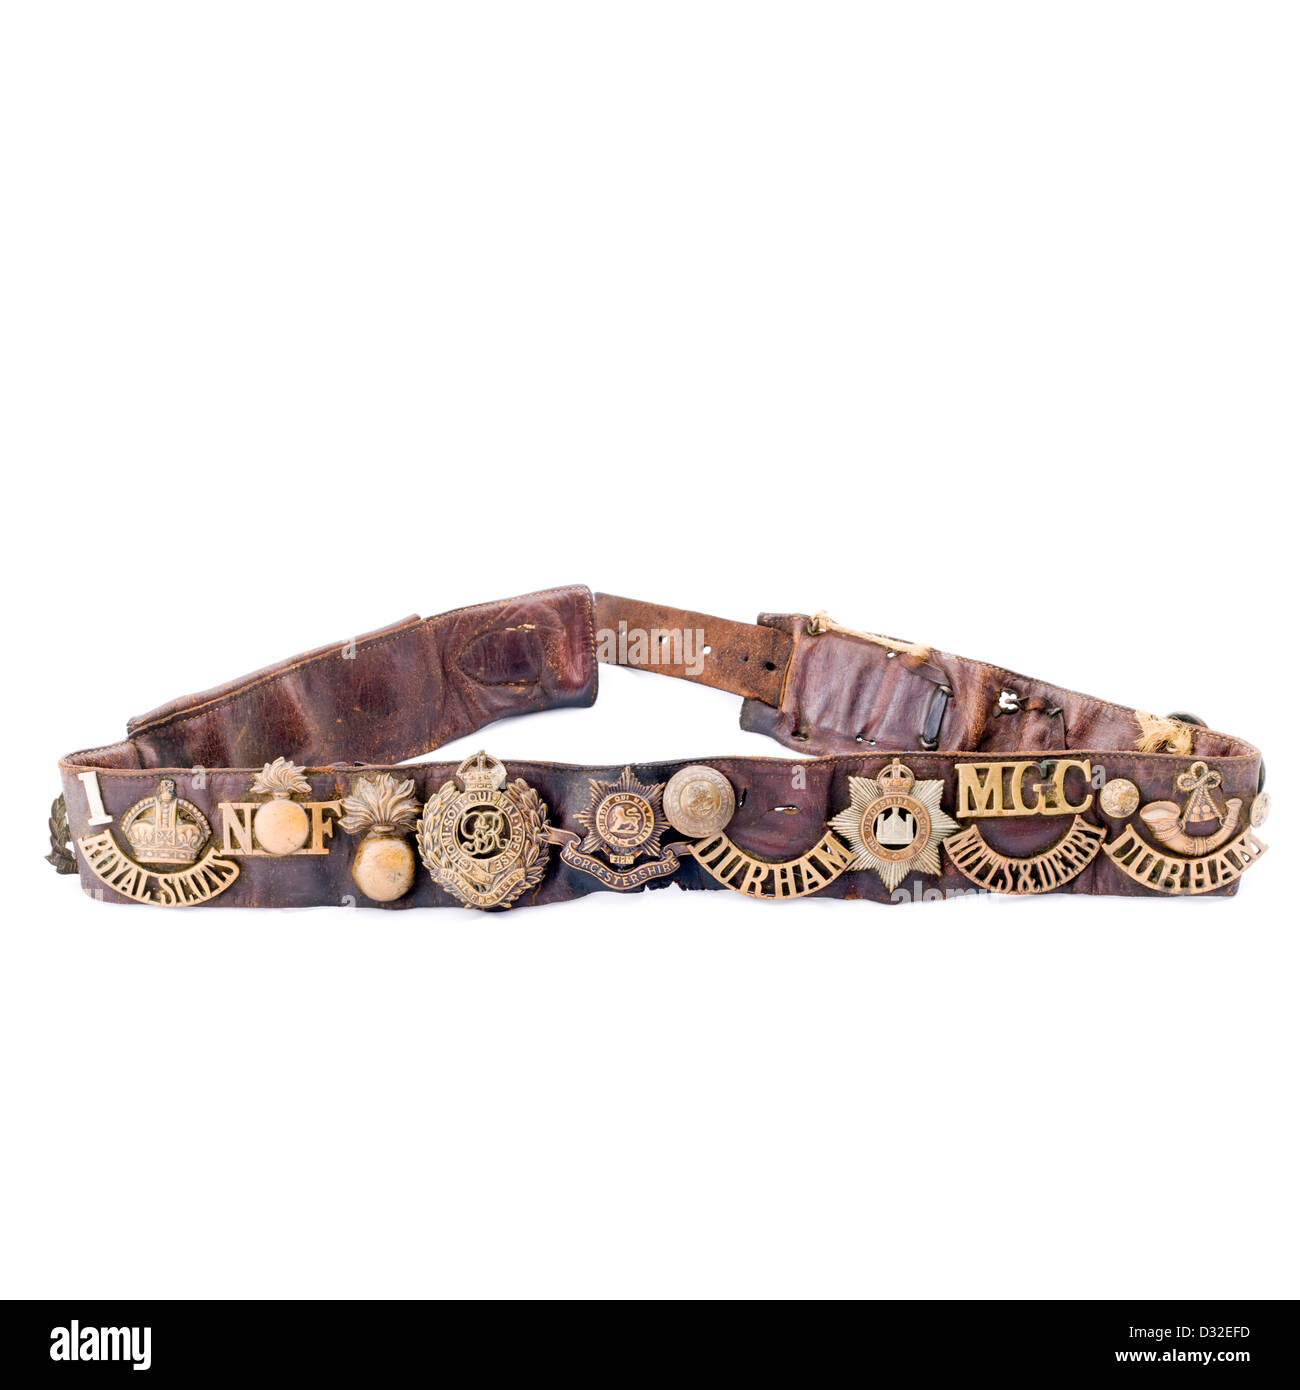 Image of a Army World War 1 belt with many awarded badges and medals attached to it - Stock Image